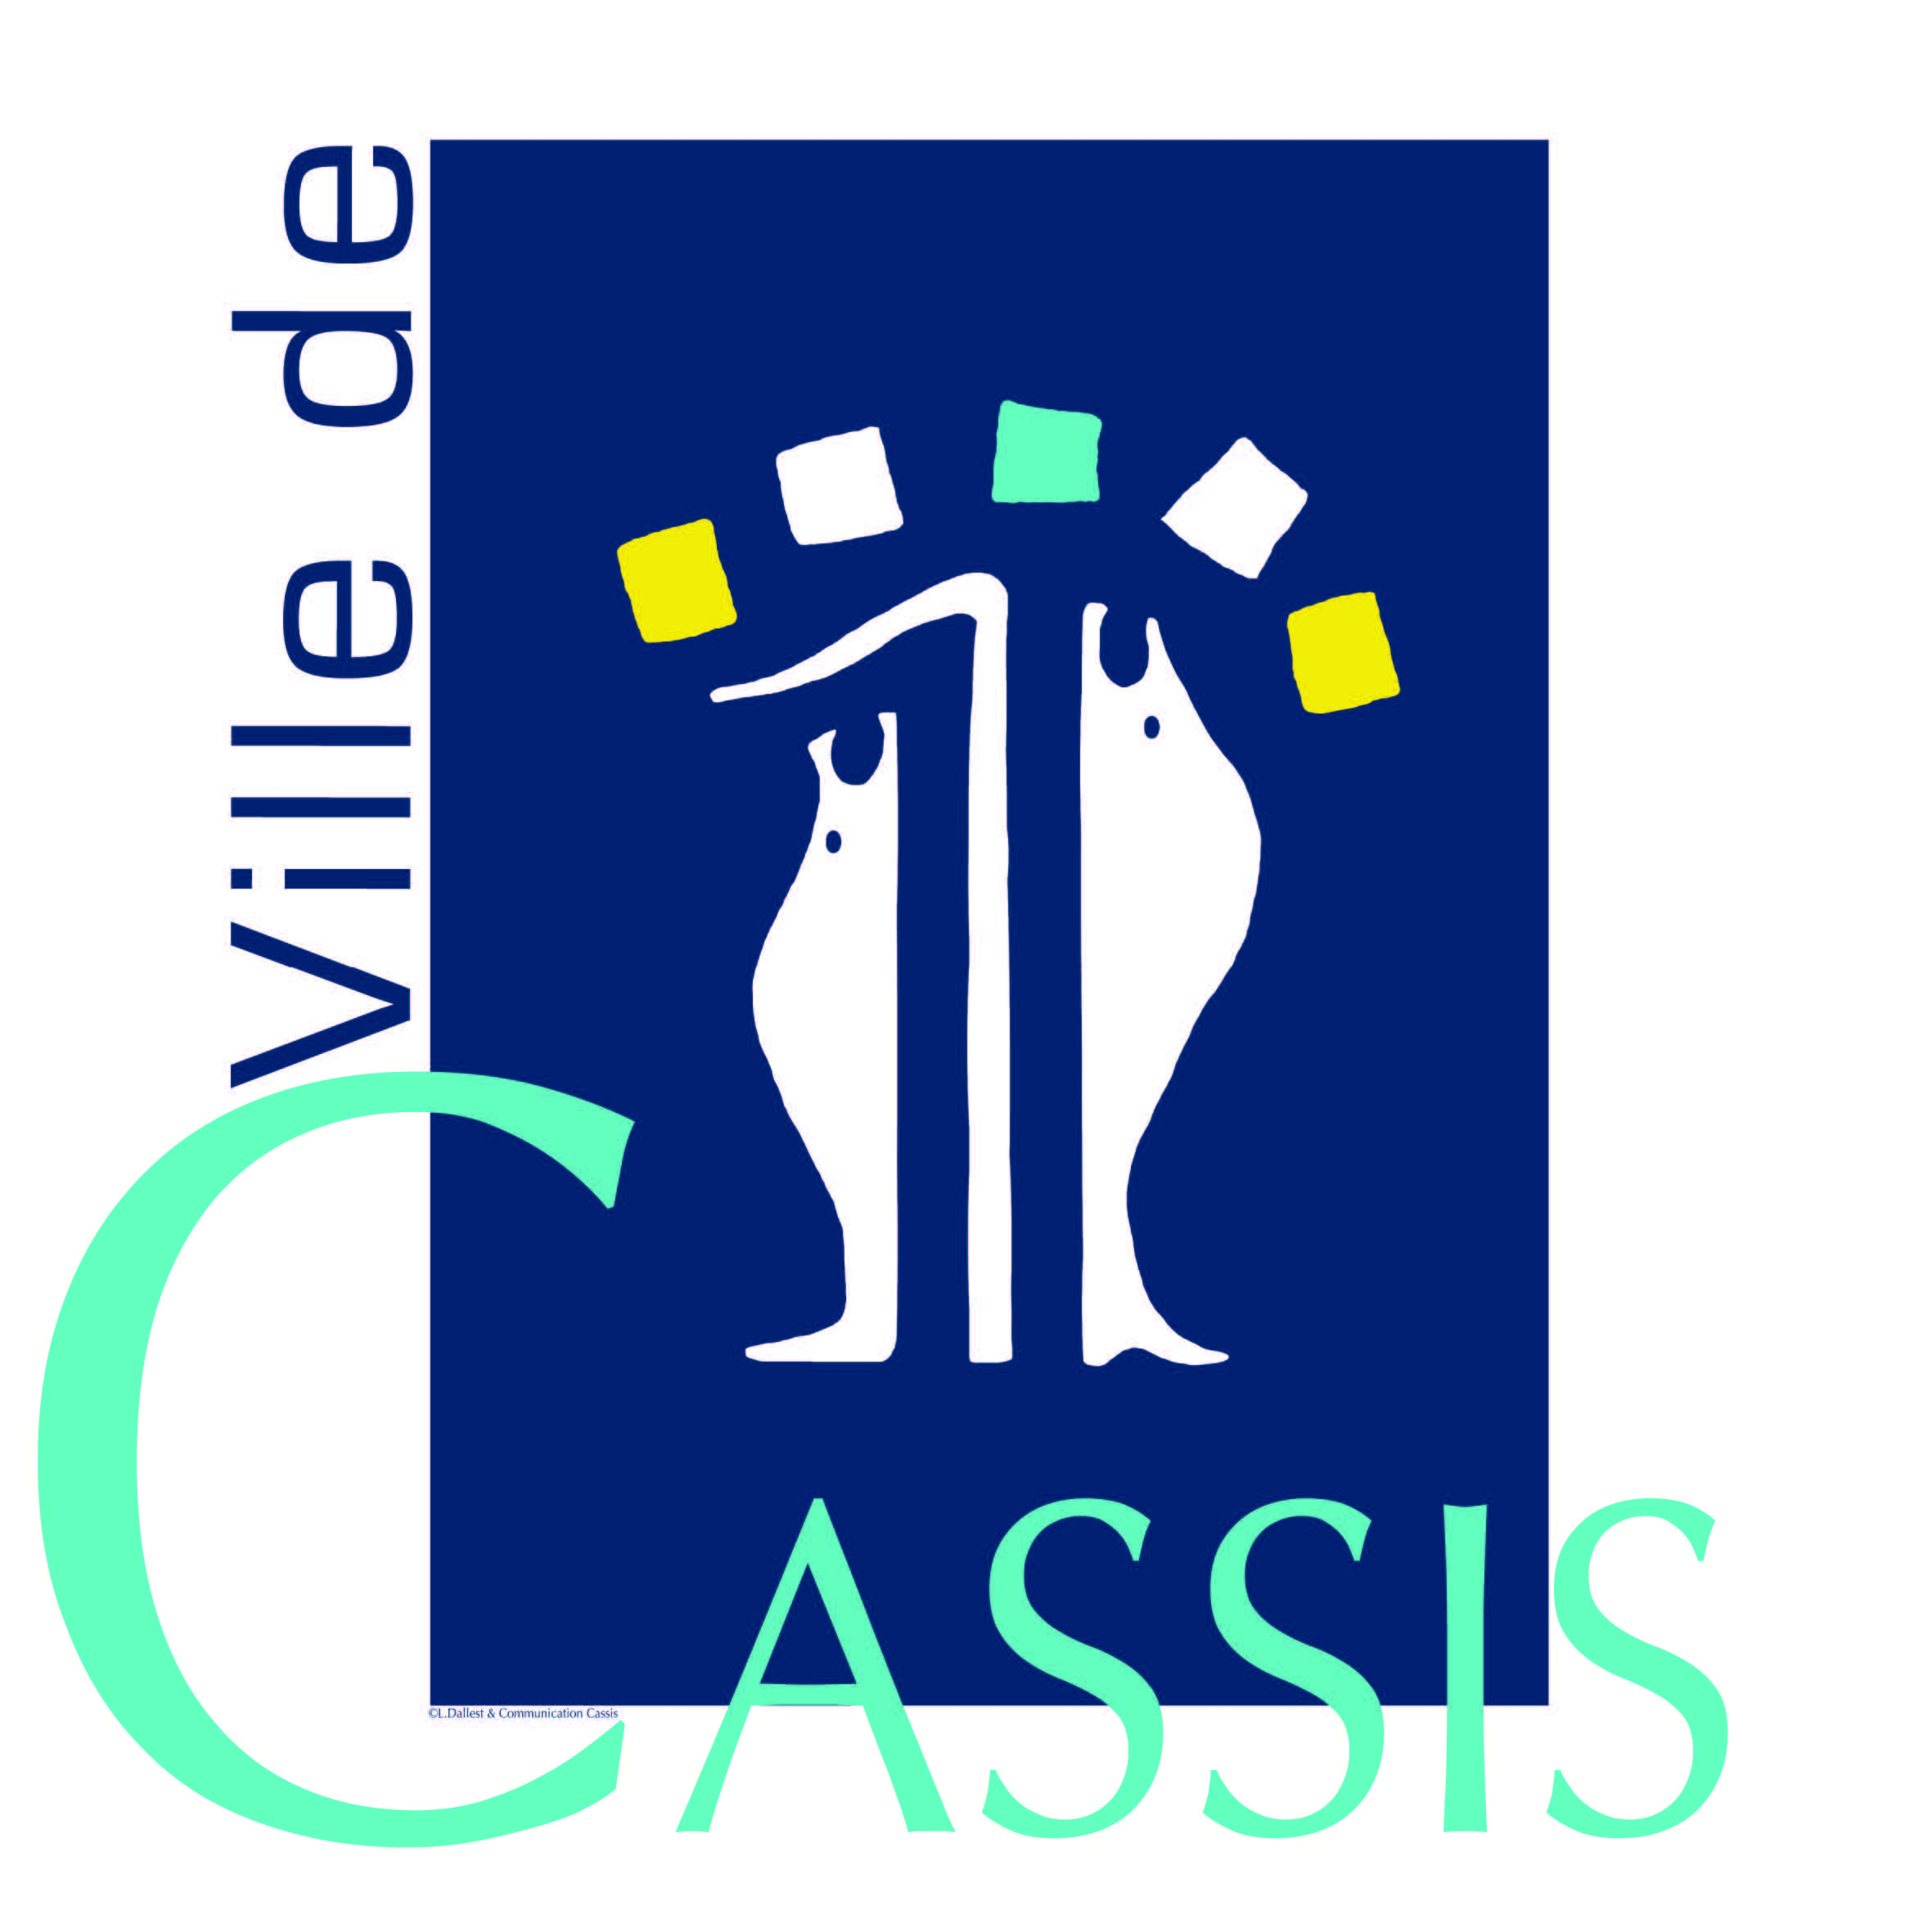 LOGO CASSI vectorisé comcassis dallest 4 Mo